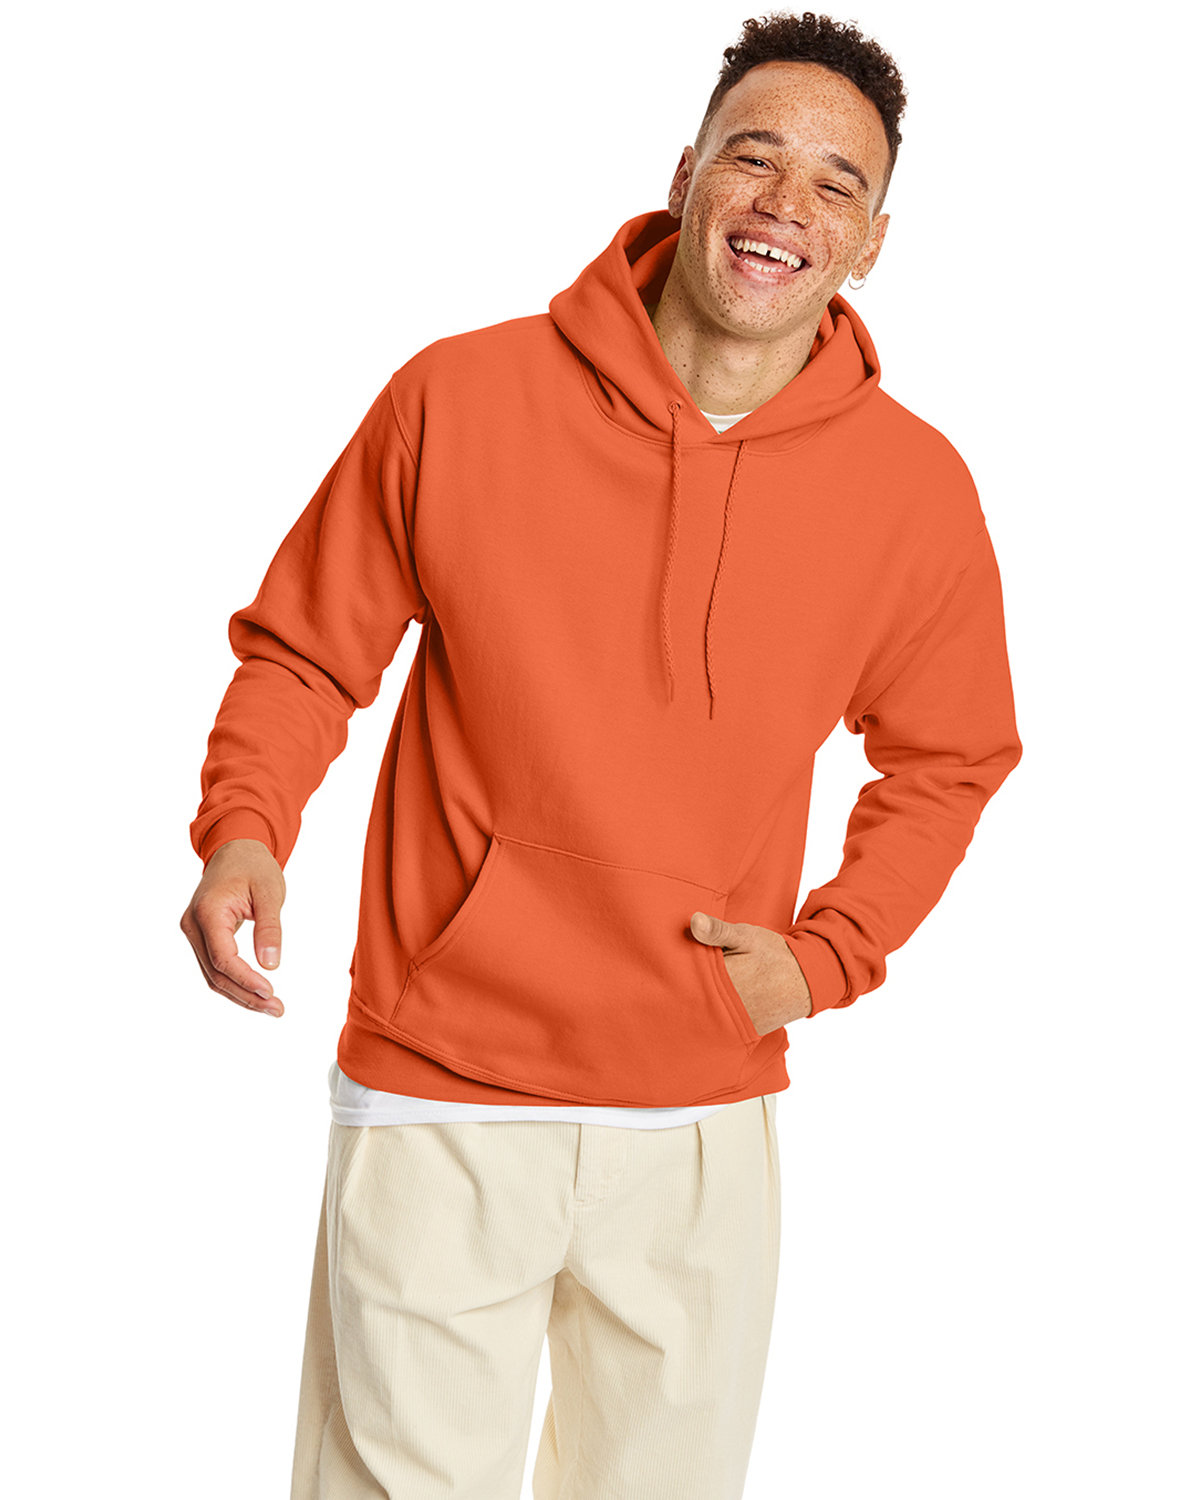 Hanes Unisex Ecosmart® 50/50 Pullover Hooded Sweatshirt RED PEPPER HTHR